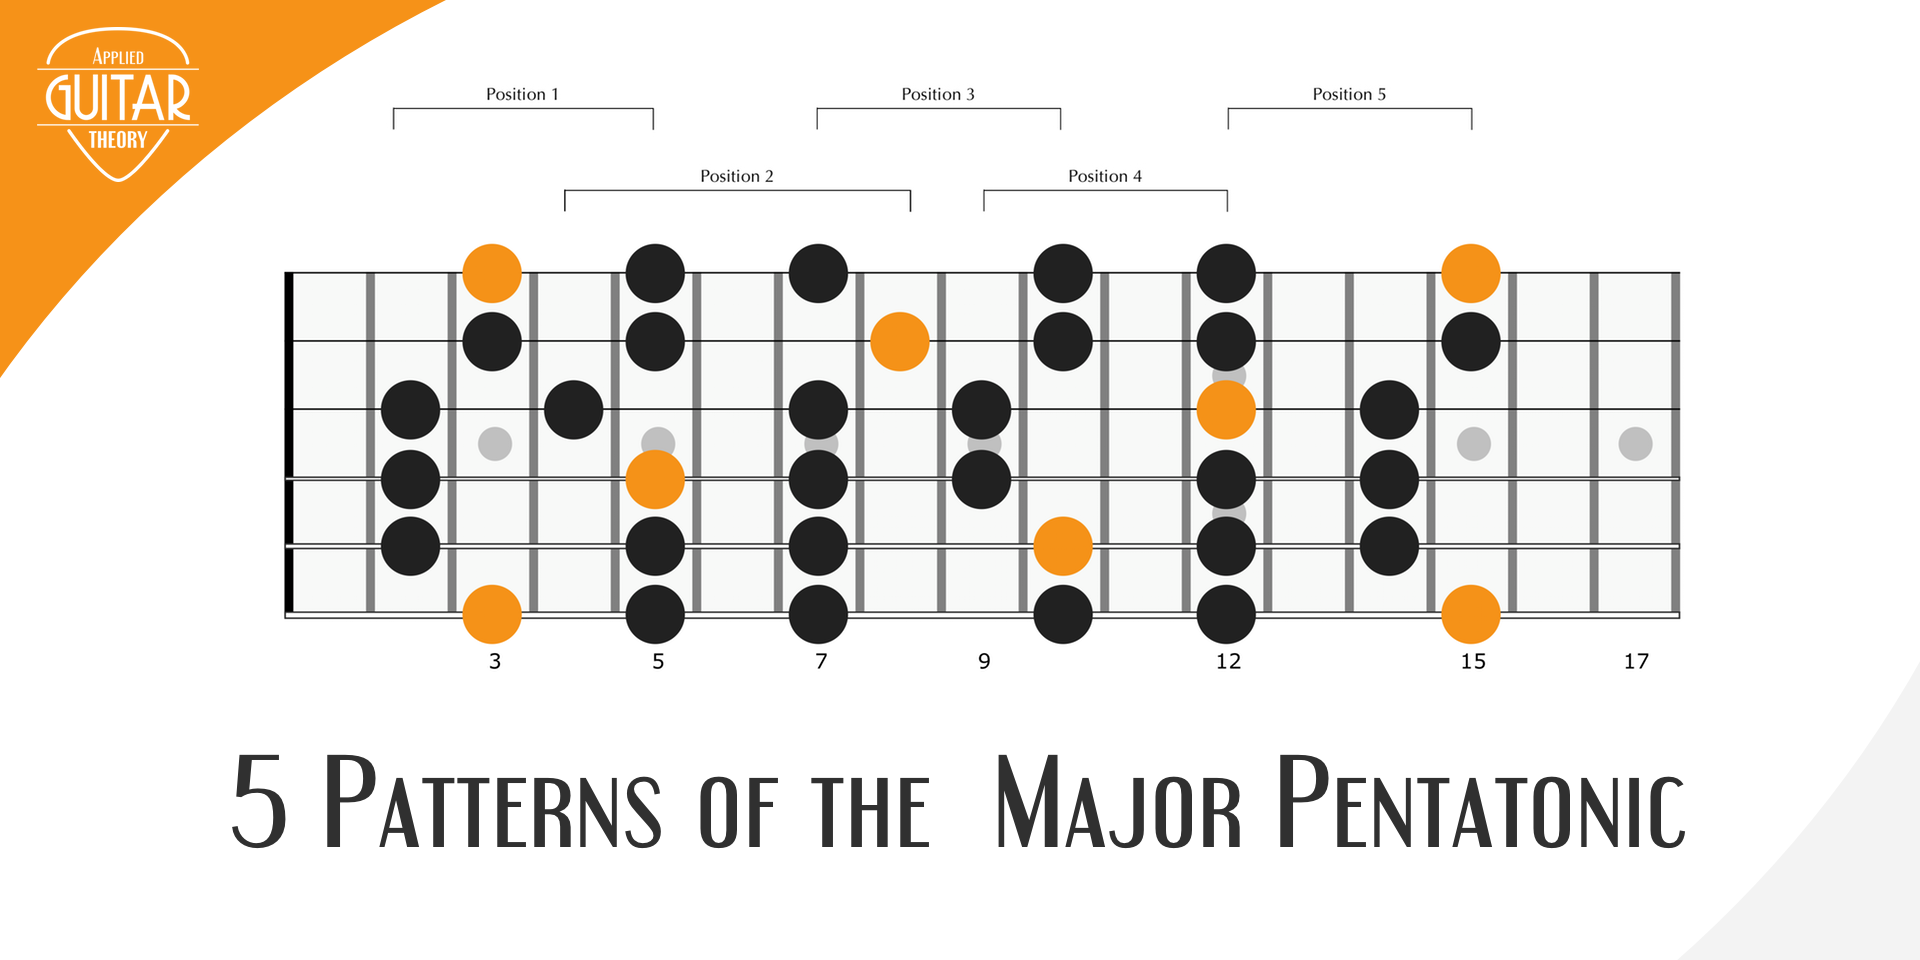 5 Patterns of the Major Pentatonic Scale